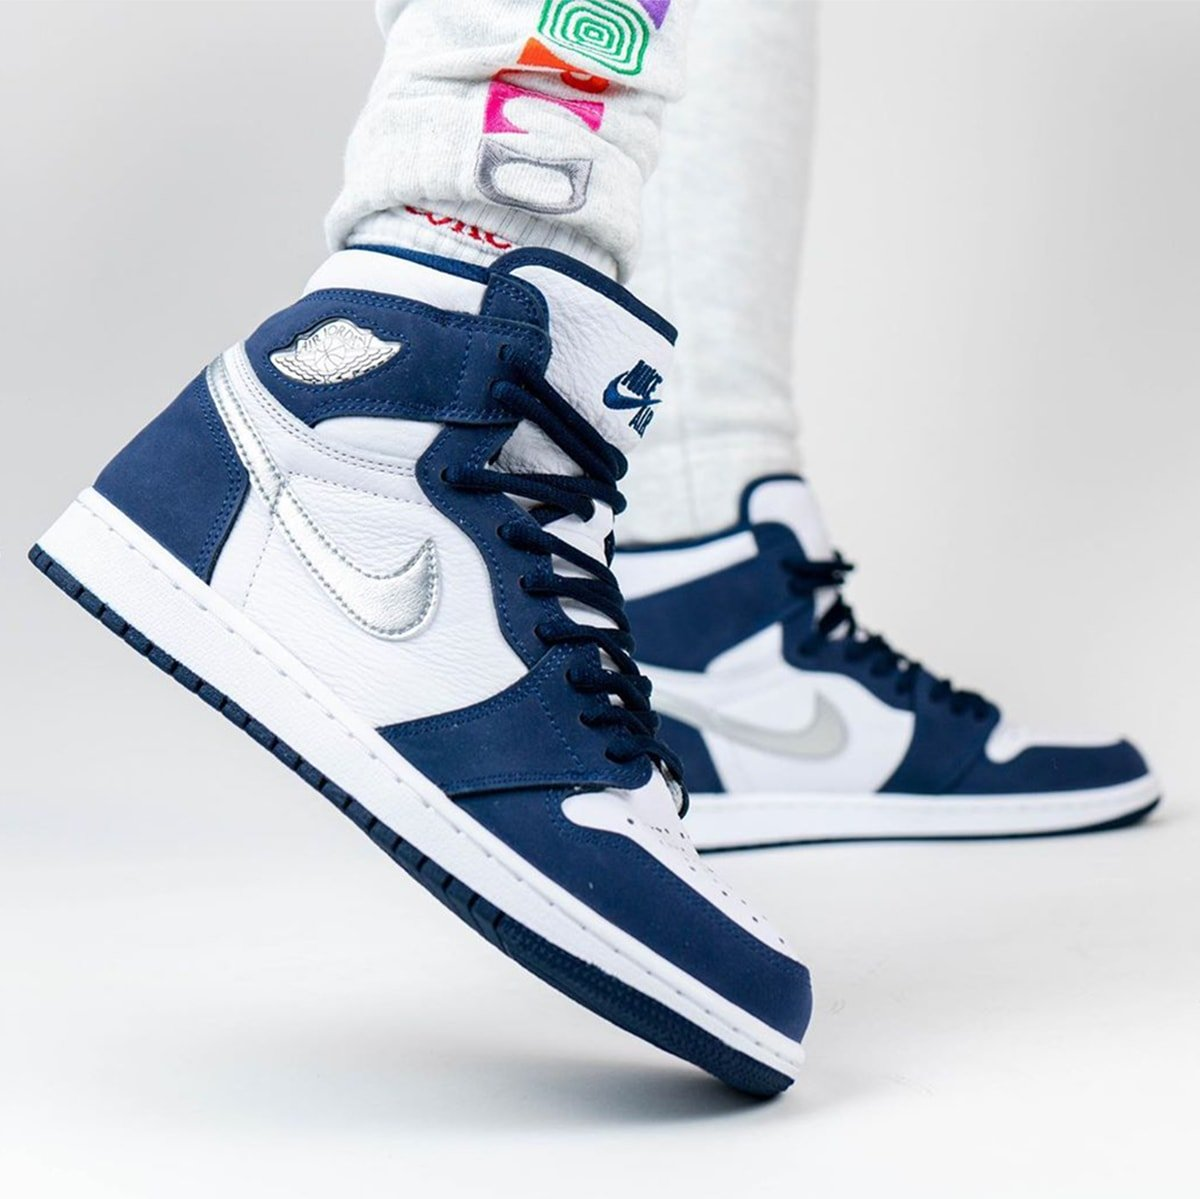 air-jordan-1-high-co-jp-midnight-navy-dc1788-100-release-date-8